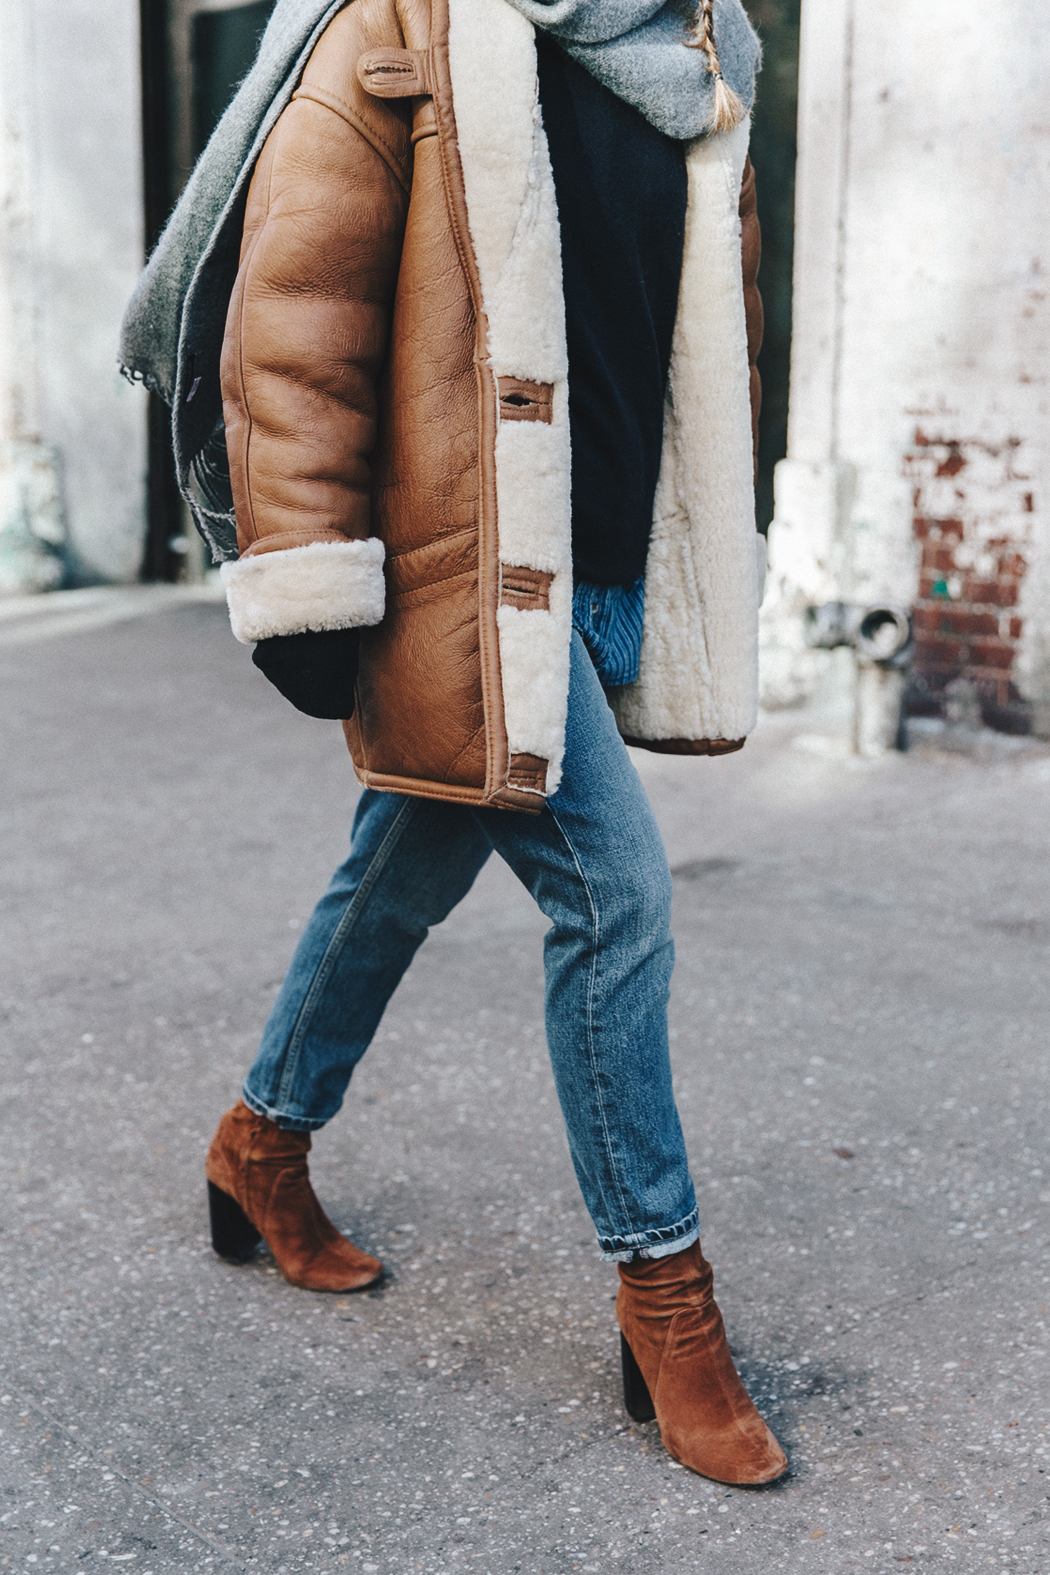 Denim_Lover-Topshop_Jeans-Vintage_Coat-Grey_Scarf-Brown_Booties-Navy_Sweayer-Denim_Shirt-Braids-NYFW-New_York_Fashion_Week-Street_style-Celine_Bag-Vestiaire_Collective-27